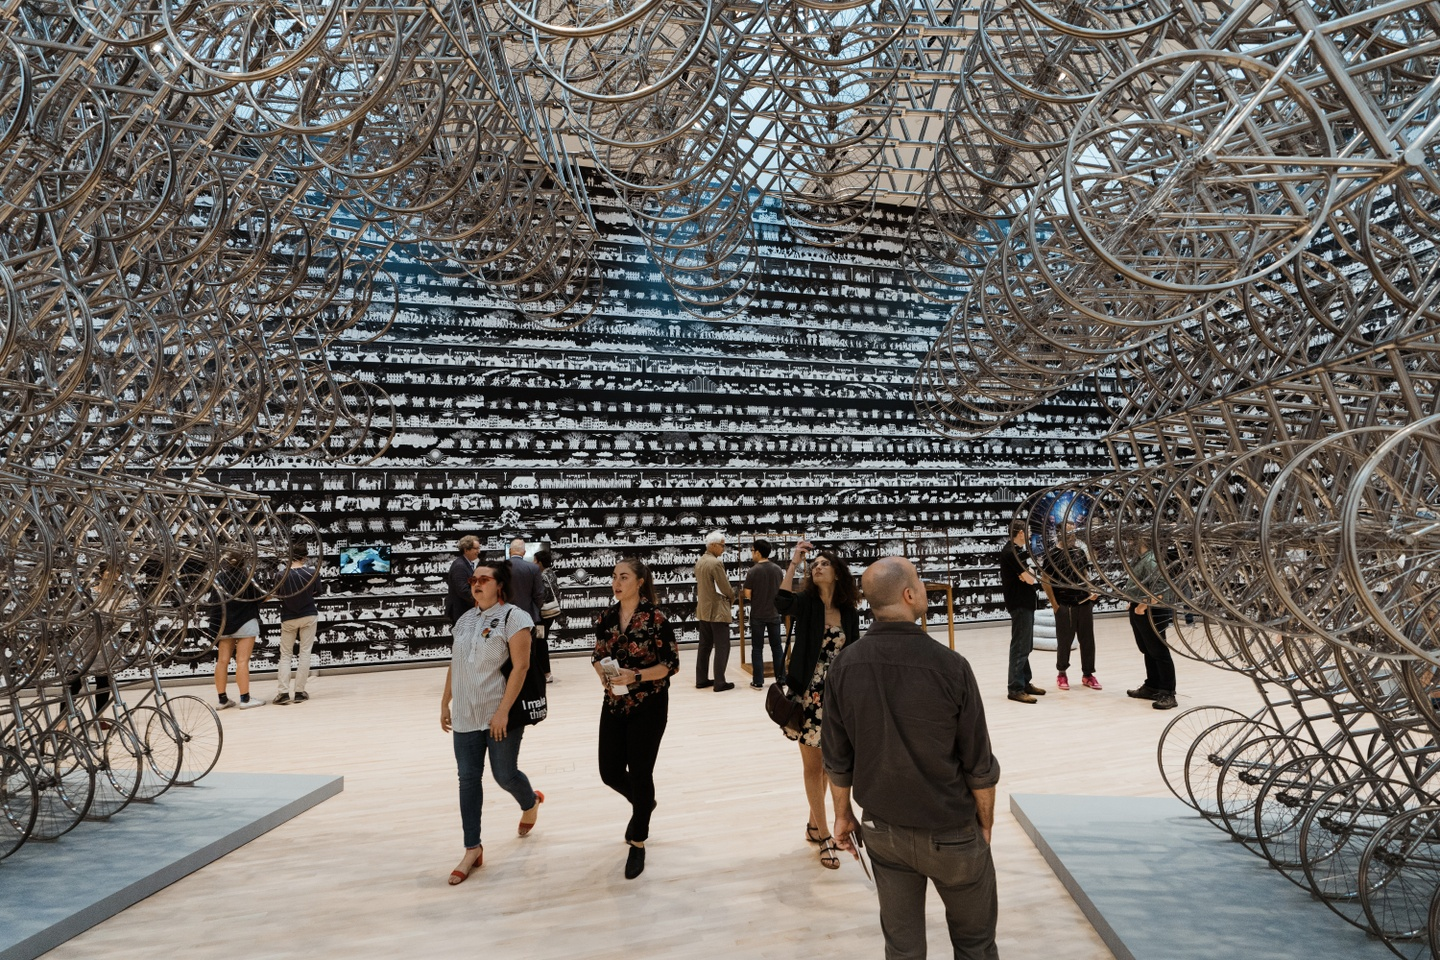 Installation of hundreds of silver bicycles, arranged in something of an arch pattern from ground to ceiling. Underneath people view the exhibition by Ai Weiwei; the back wall features a patterned black wallpaper and a couple of video monitors.